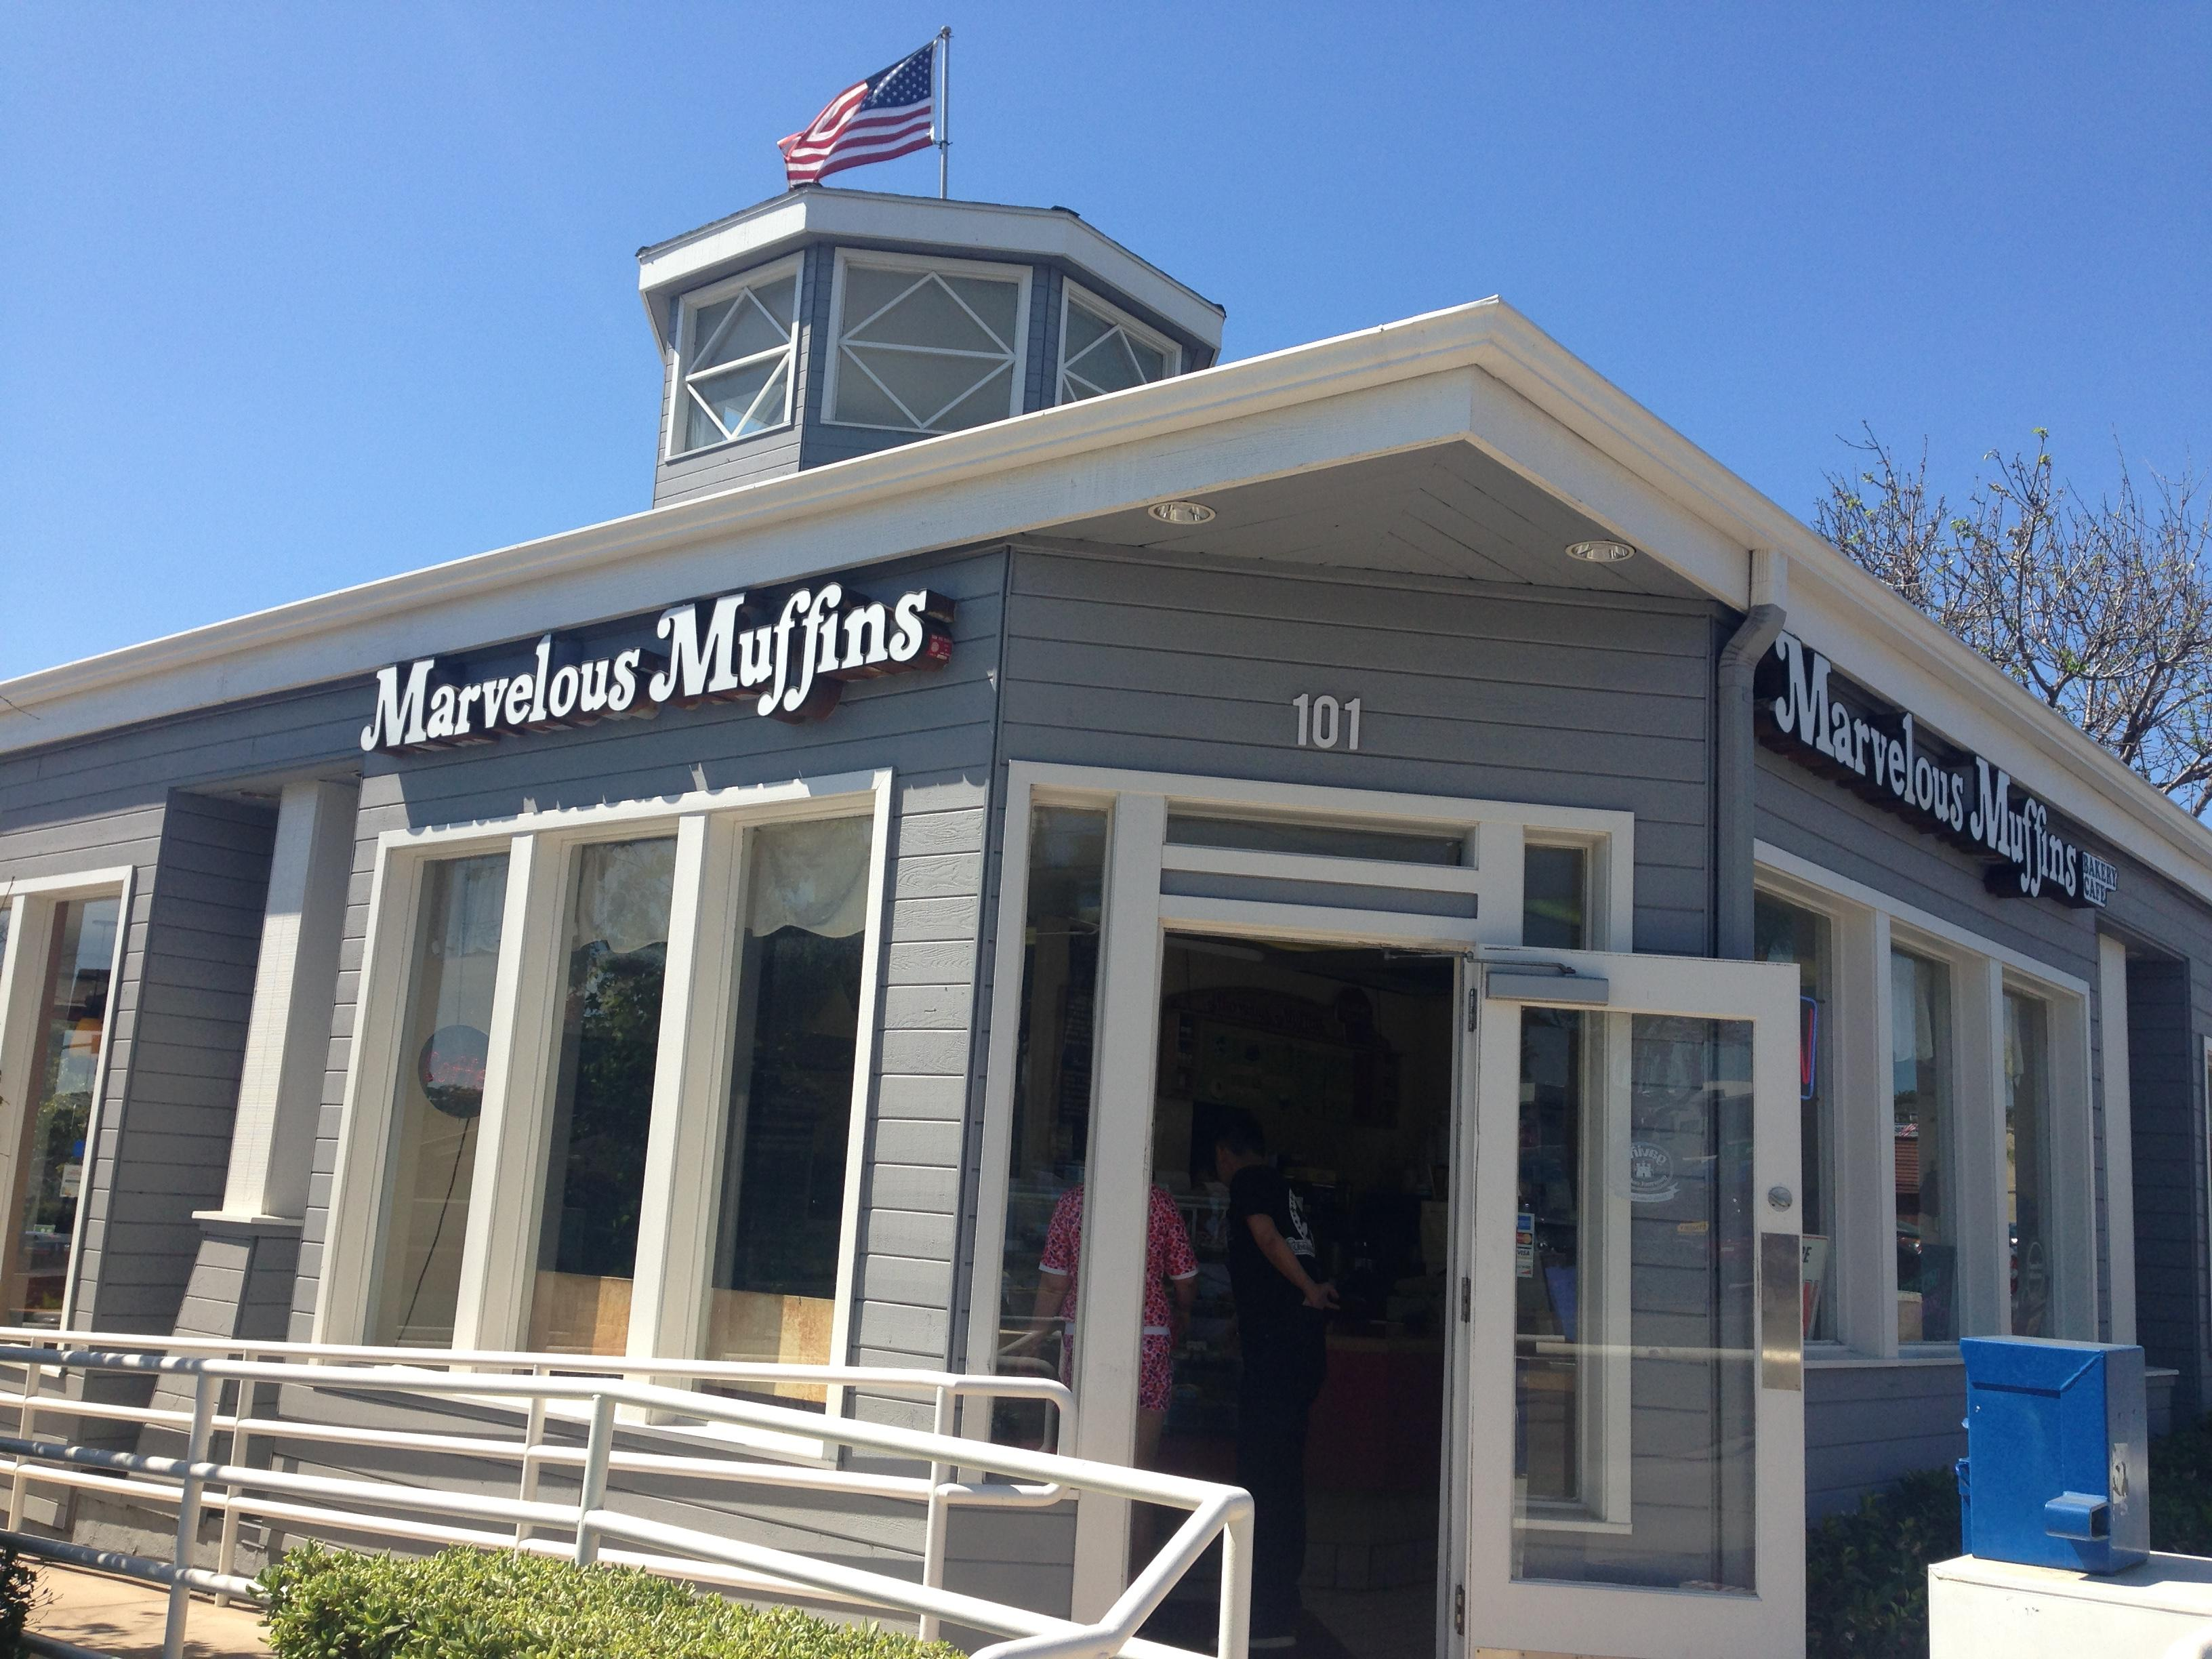 A simple muffin shop endures in Shelter Island.